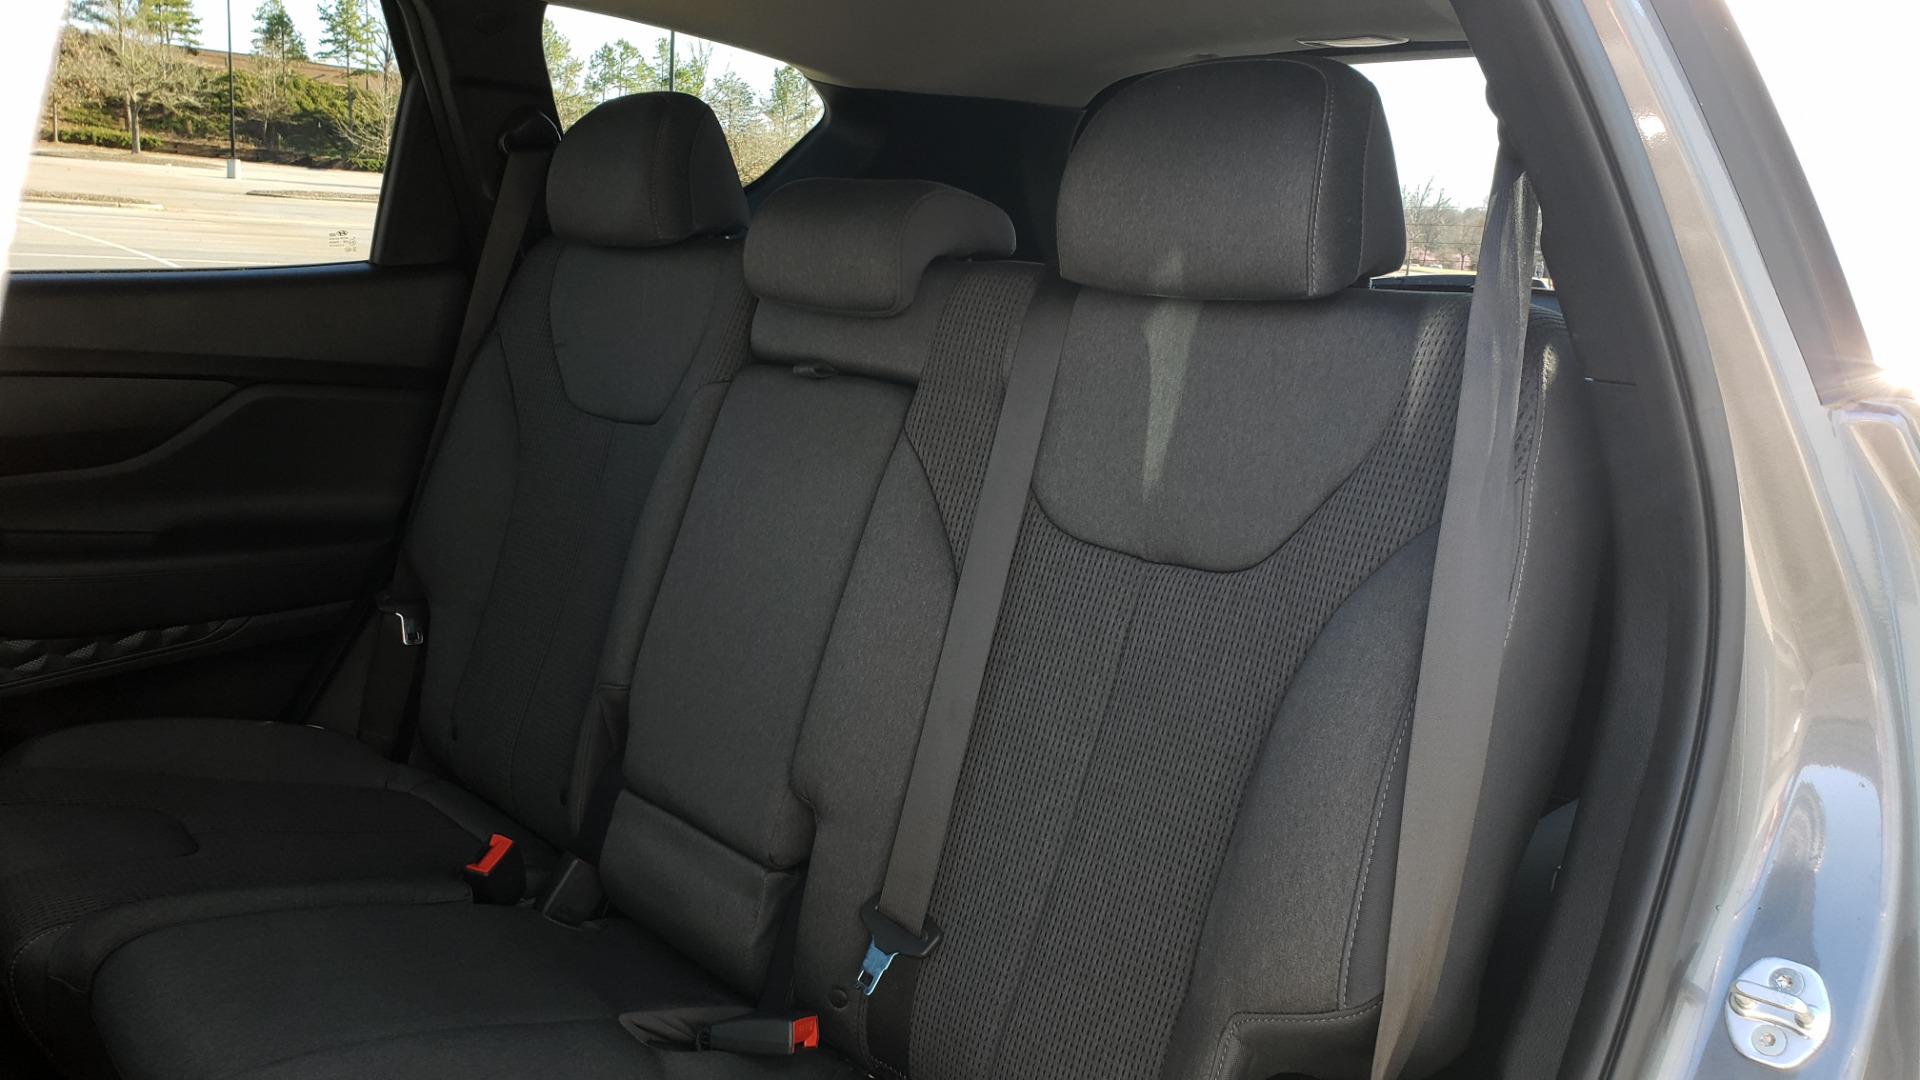 Used 2019 Hyundai SANTA FE SE / 2.4L 4-CYL / 8-SPD AUTO / BLIND SPOT / LANE KEEP ASSIST for sale Sold at Formula Imports in Charlotte NC 28227 60